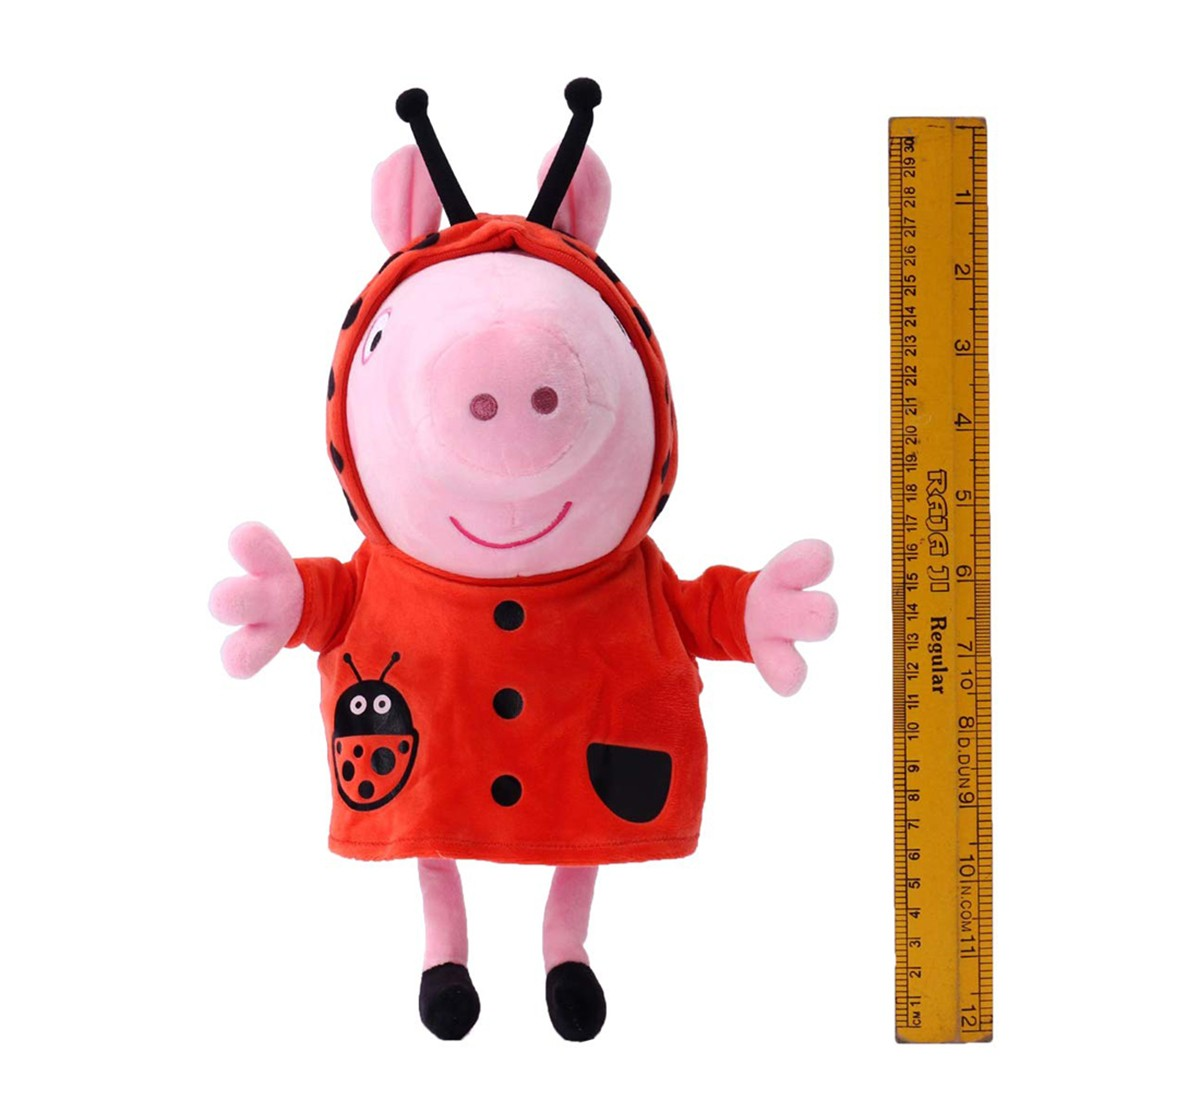 Peppa Pig In Ladybird Costume Soft Toy for Girls age 1Y+ - 30 Cm